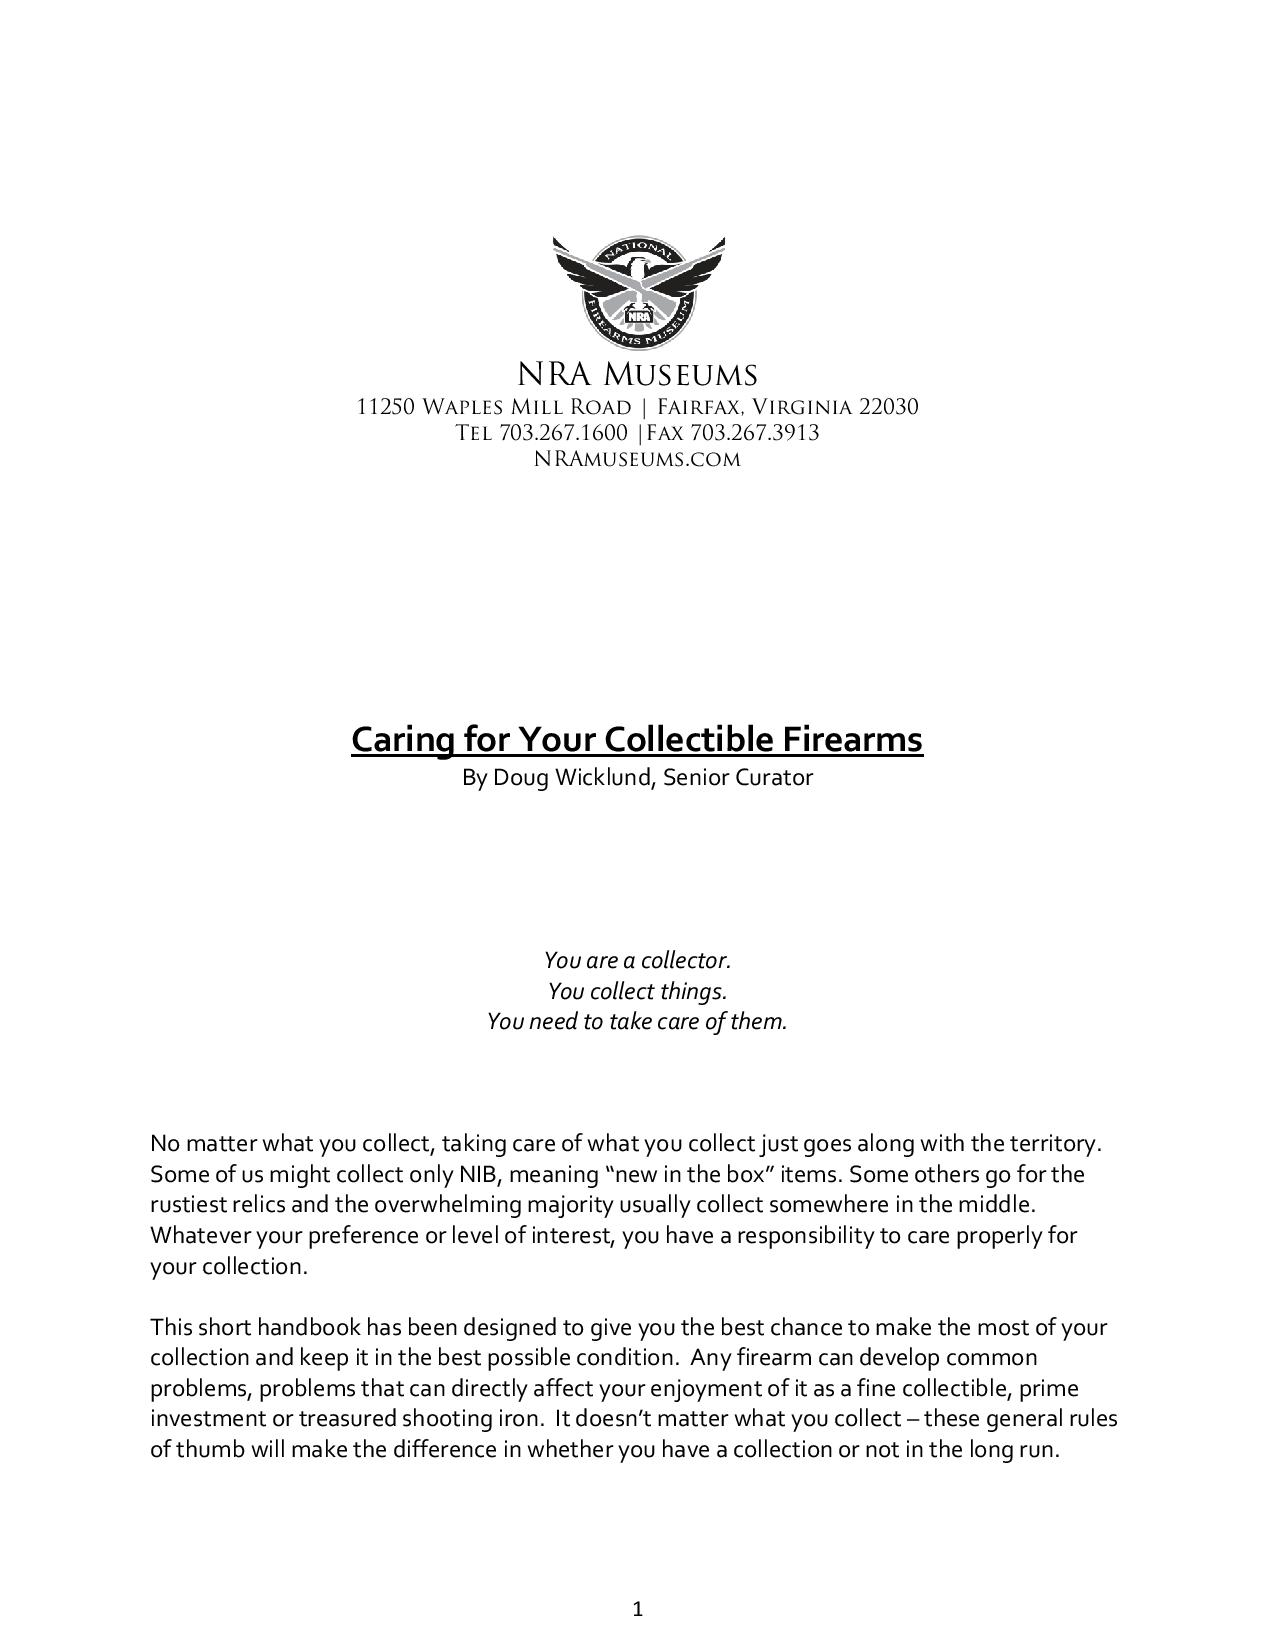 caring for your collectible firearms by doug wicklund-page-001